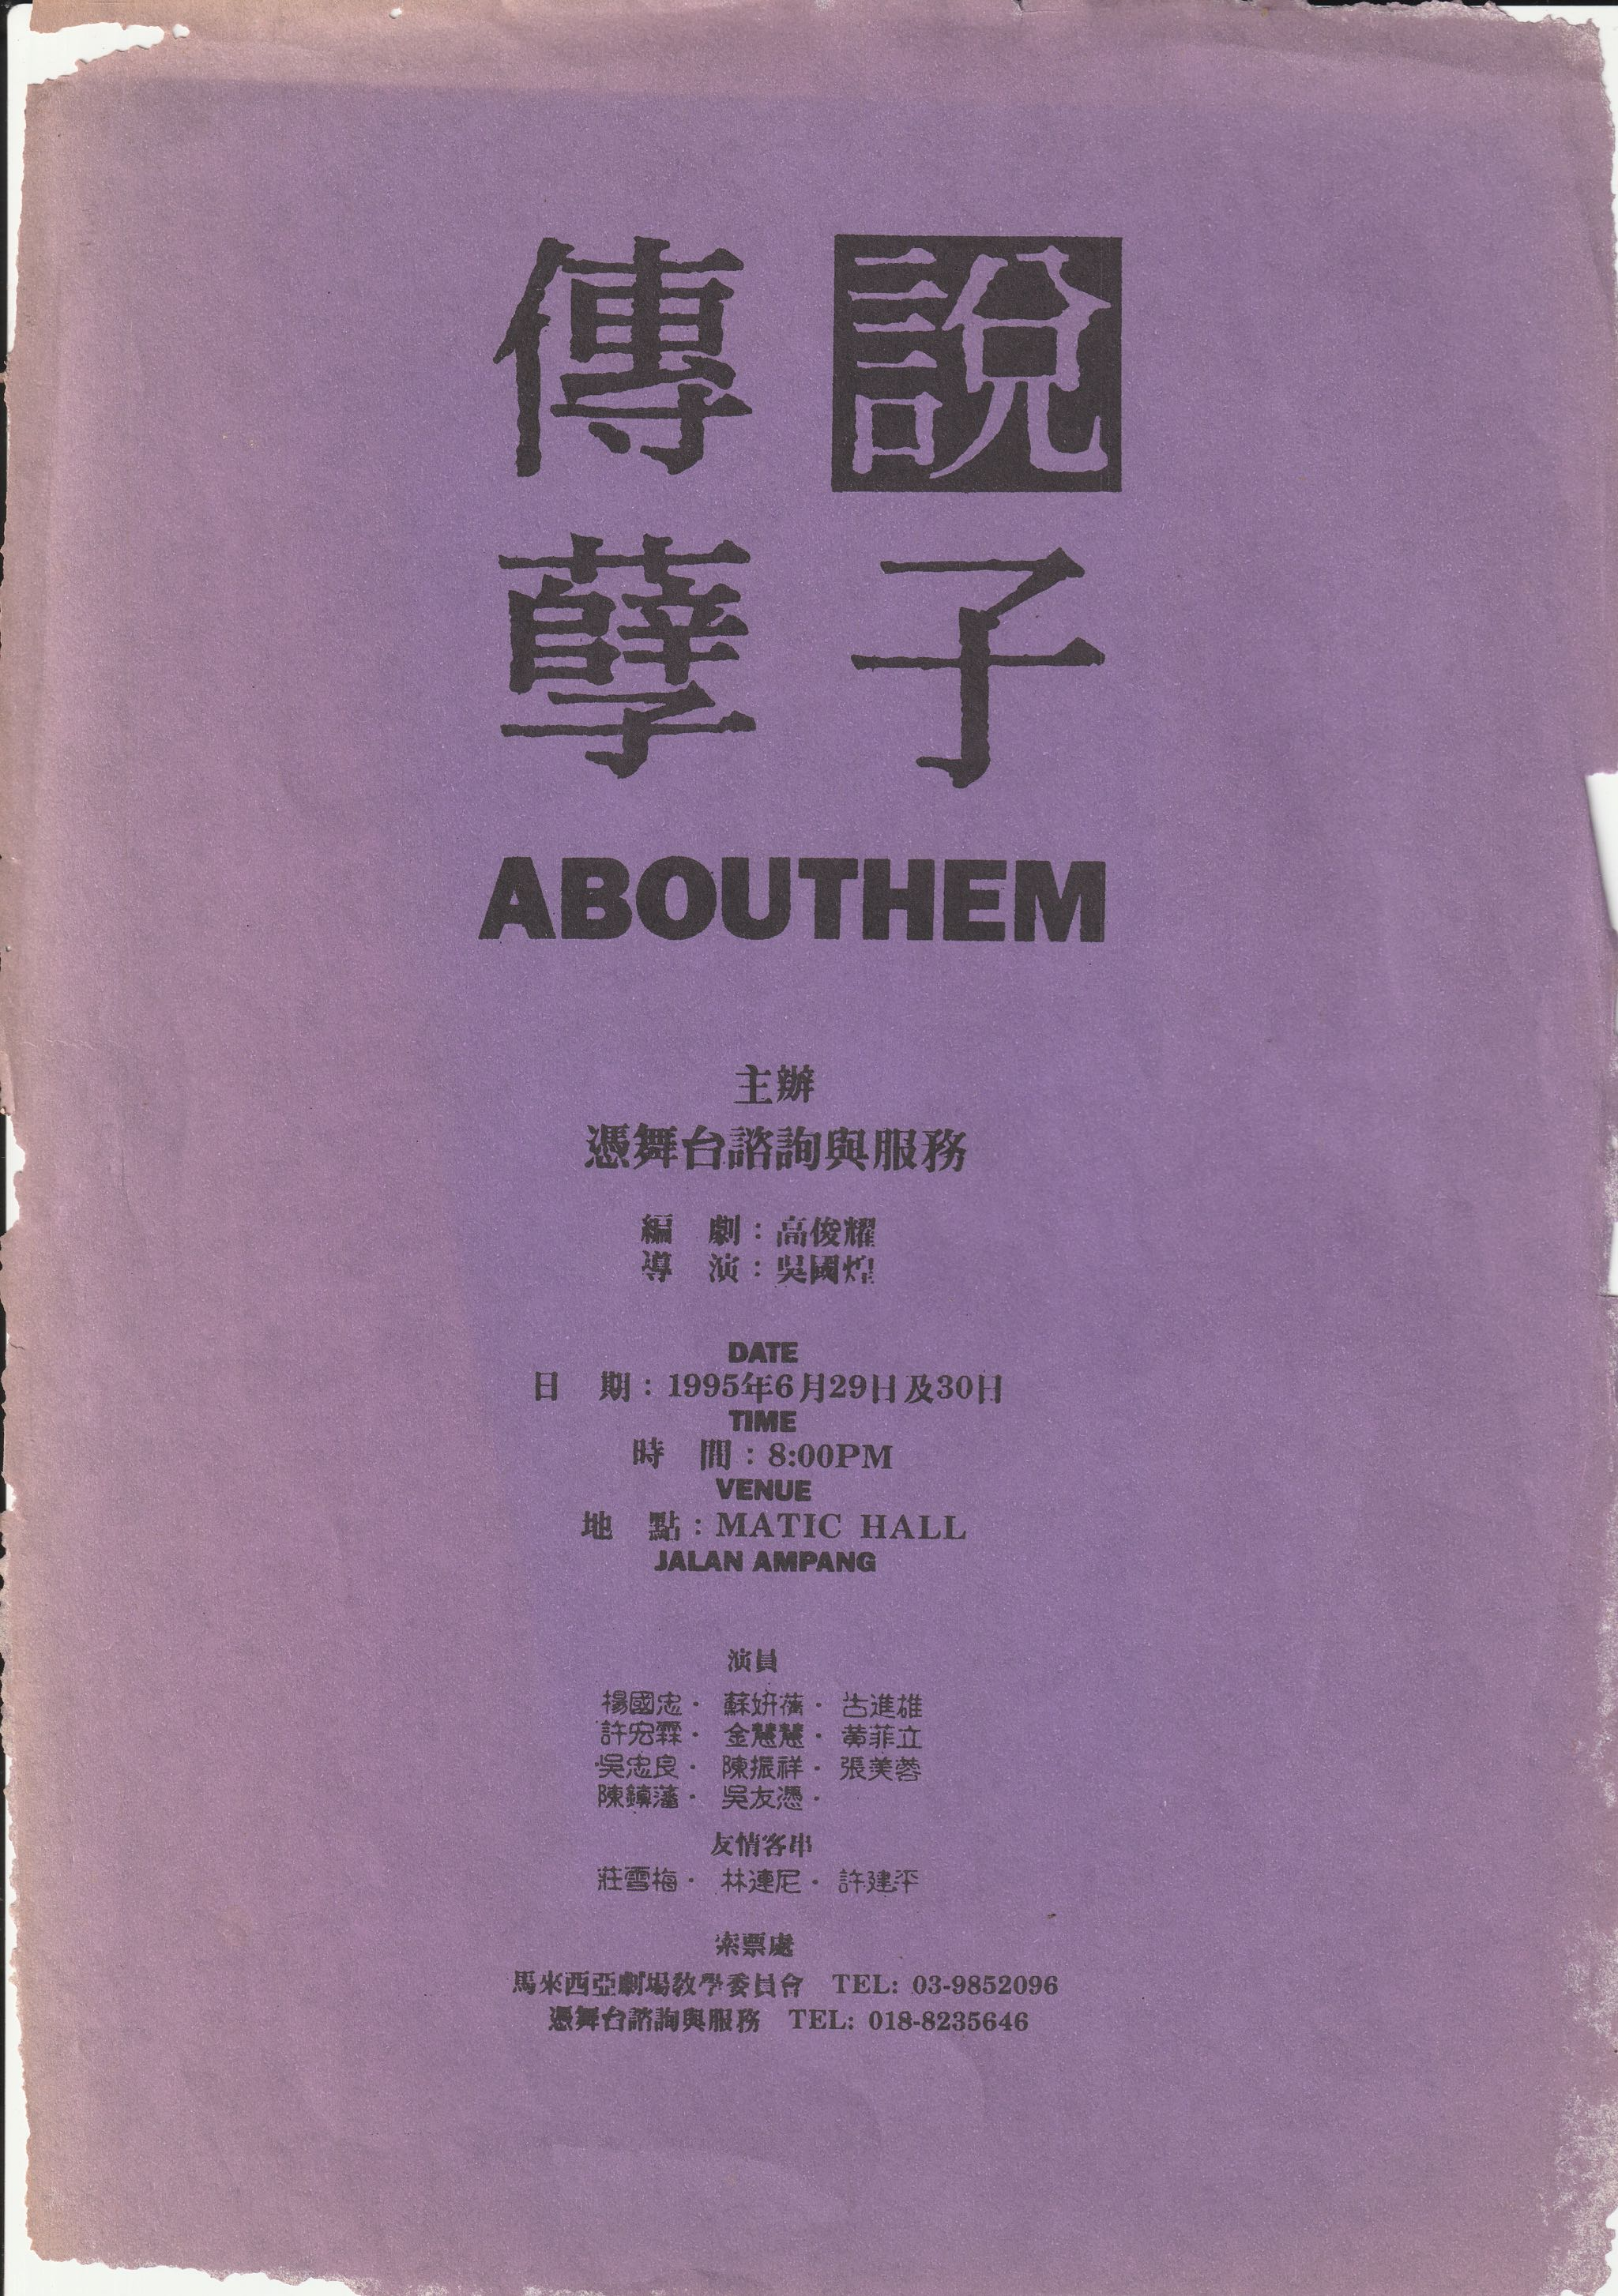 1995 Abouthem Flyer